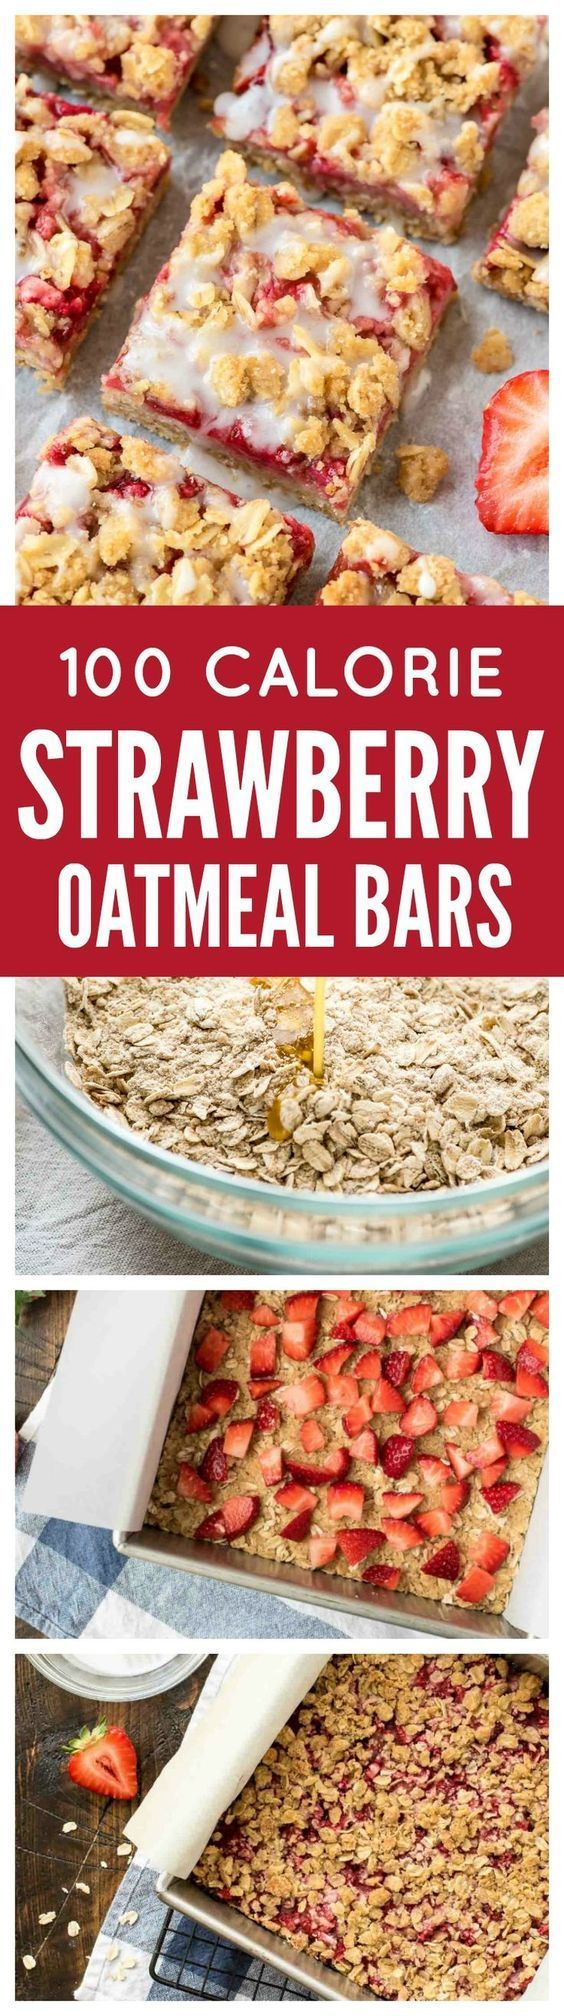 These buttery Strawberry Oatmeal Bars are only 100 CALORIES EACH!! With a buttery crust, sweet strawberry filling, and delicious crumb topping, they make wonderful dessert bars to take to a party or potluck but are healthy enough for a snack. So easy even kids can make them! /wellplated/ http://www.wellplated.com